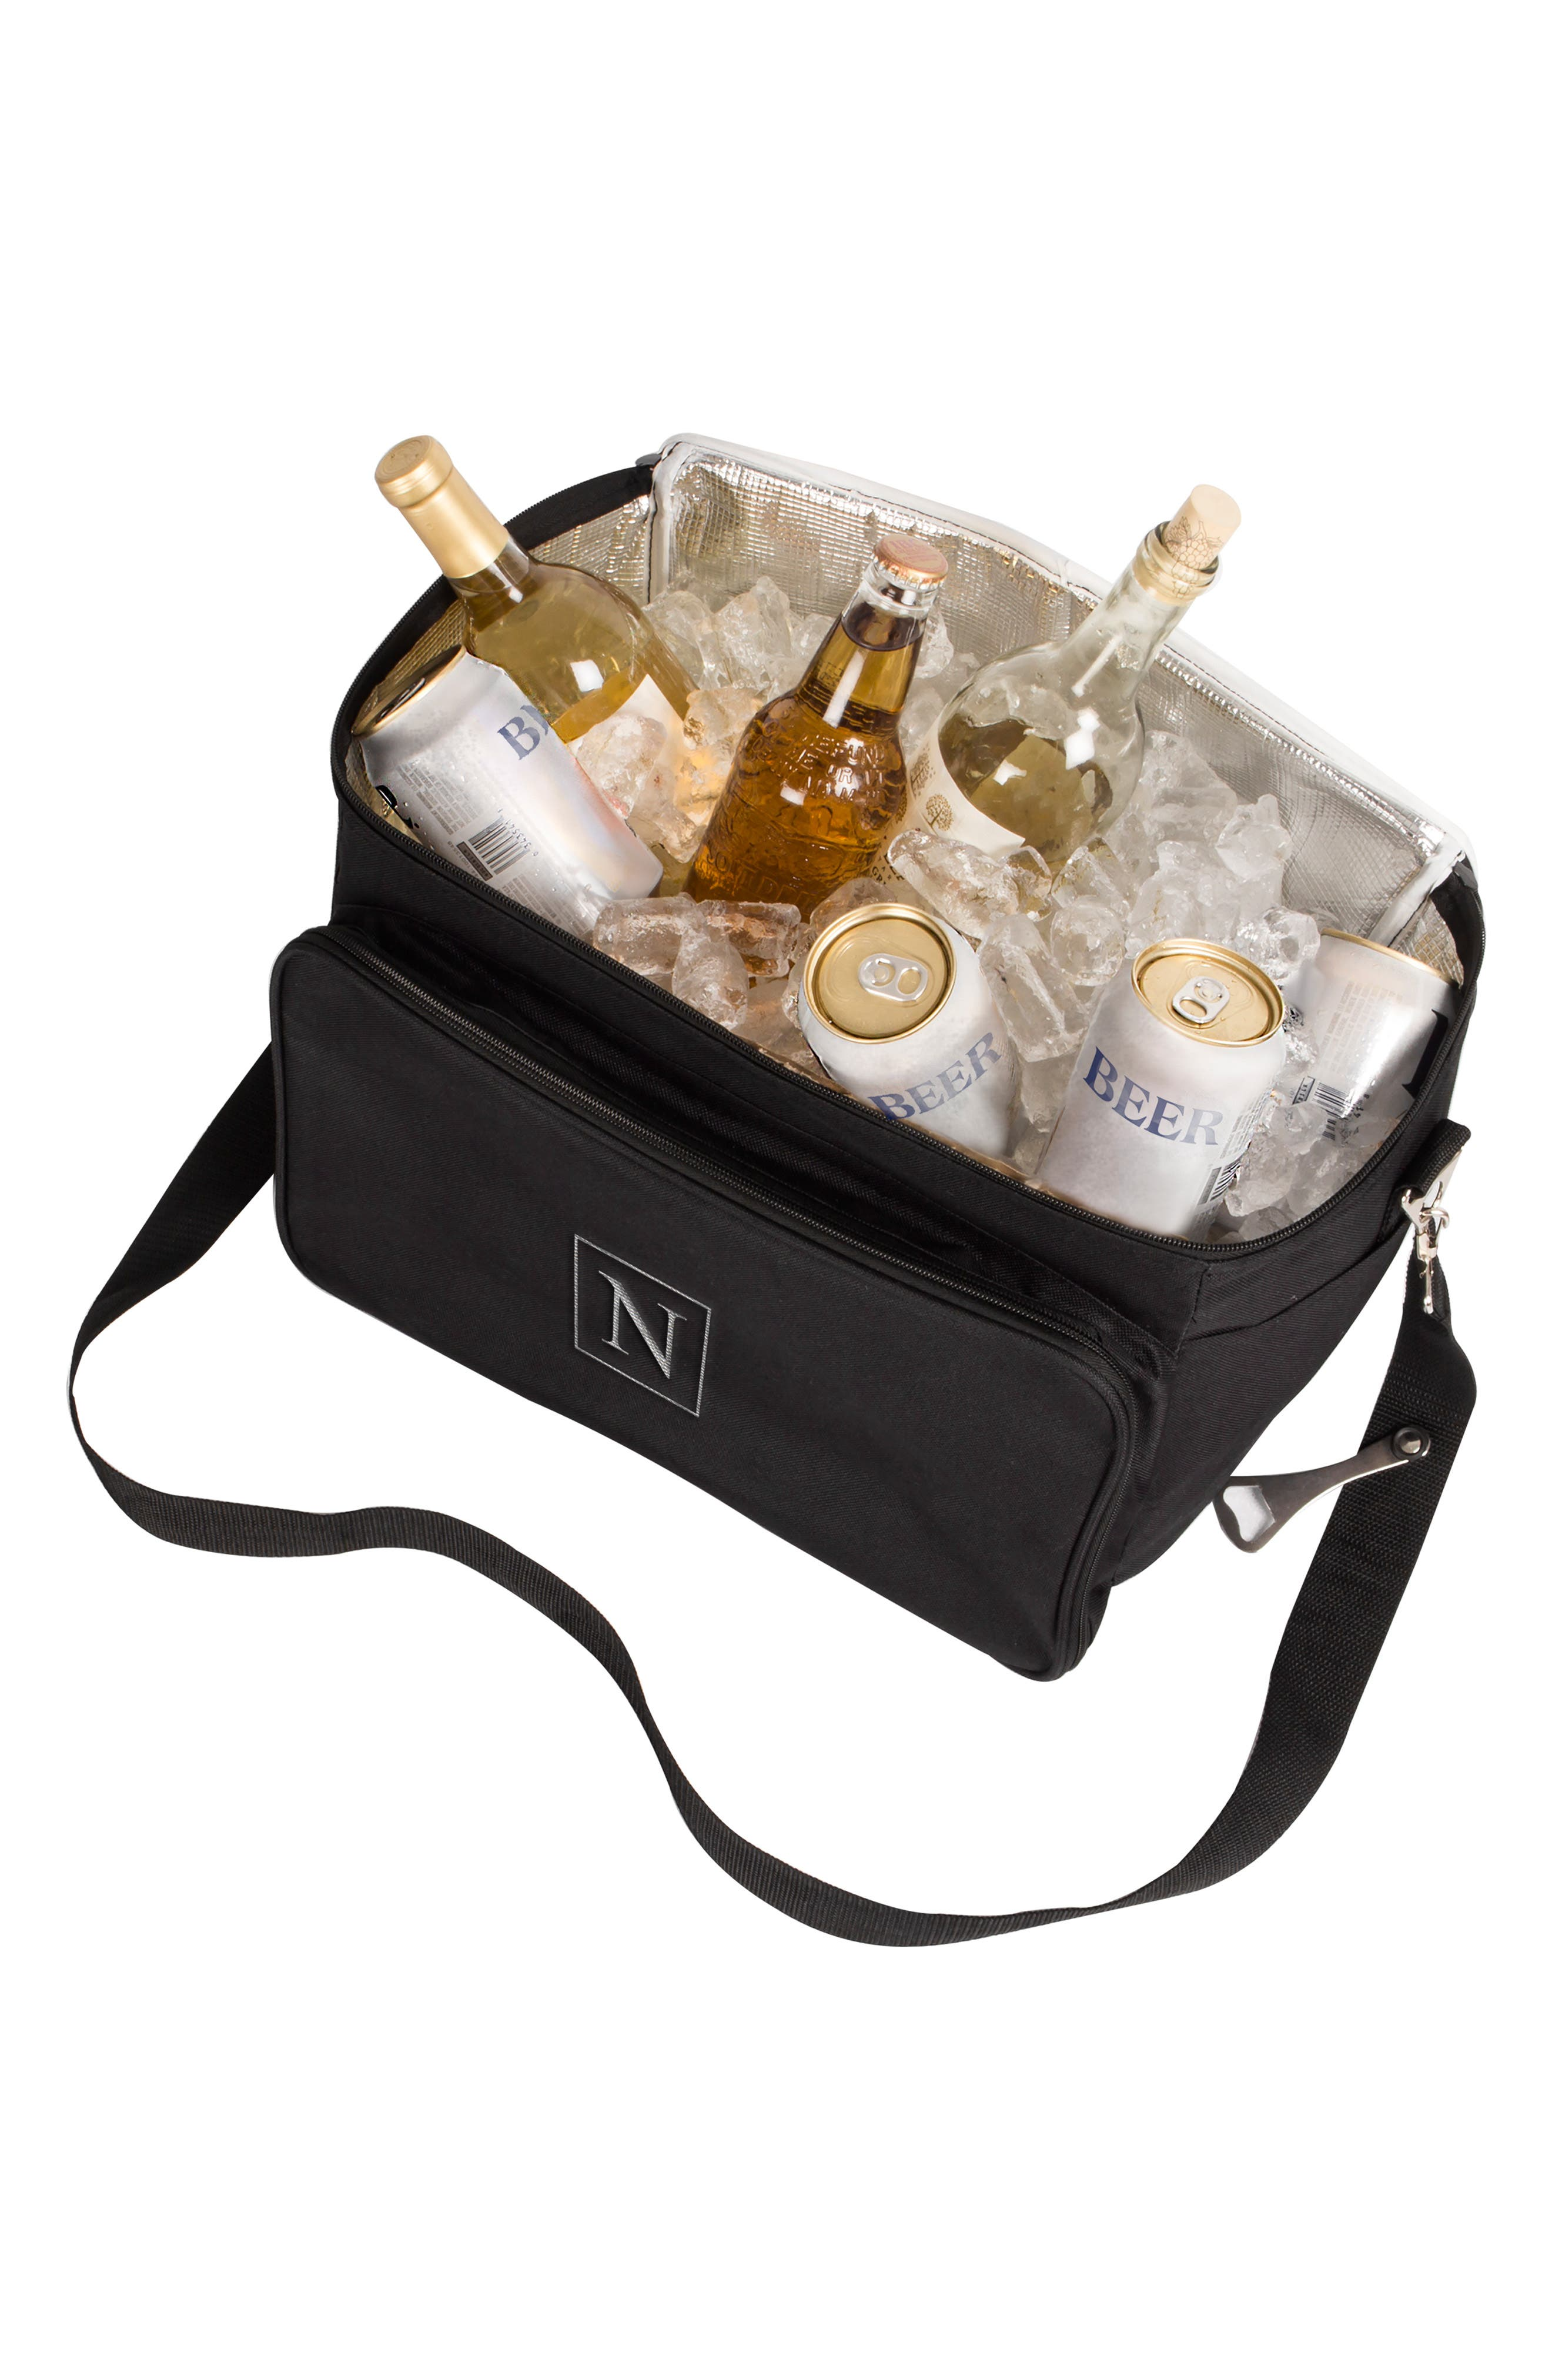 Monogram Tailgate Cooler with Grilling Tools,                             Alternate thumbnail 58, color,